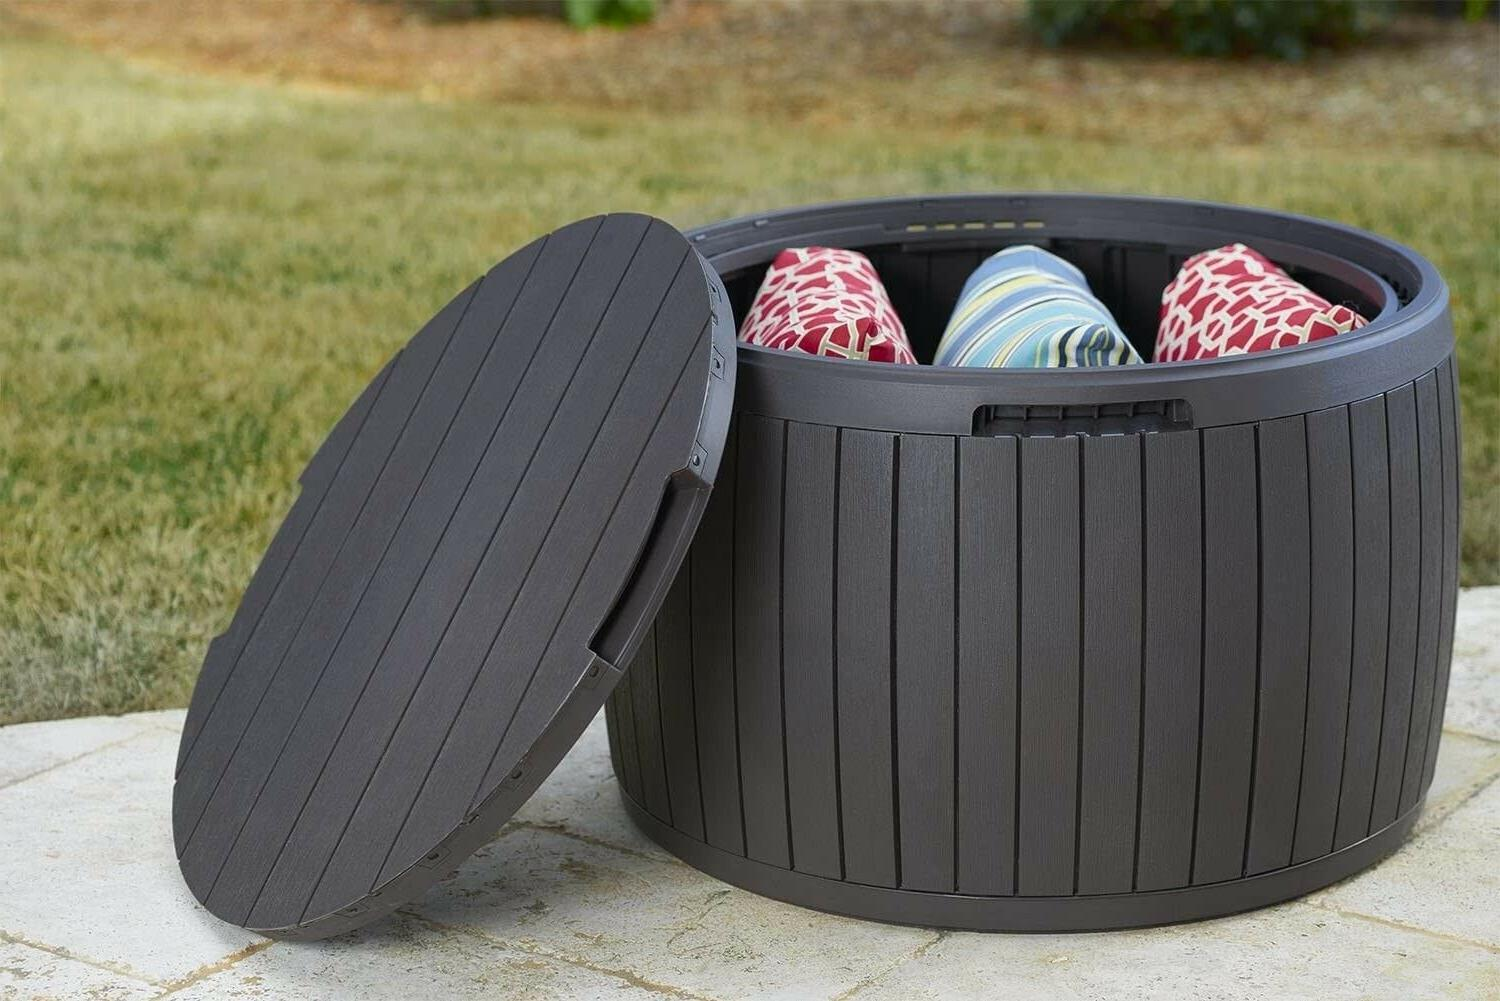 Keter for Decor and Outdoor Simple&Quick